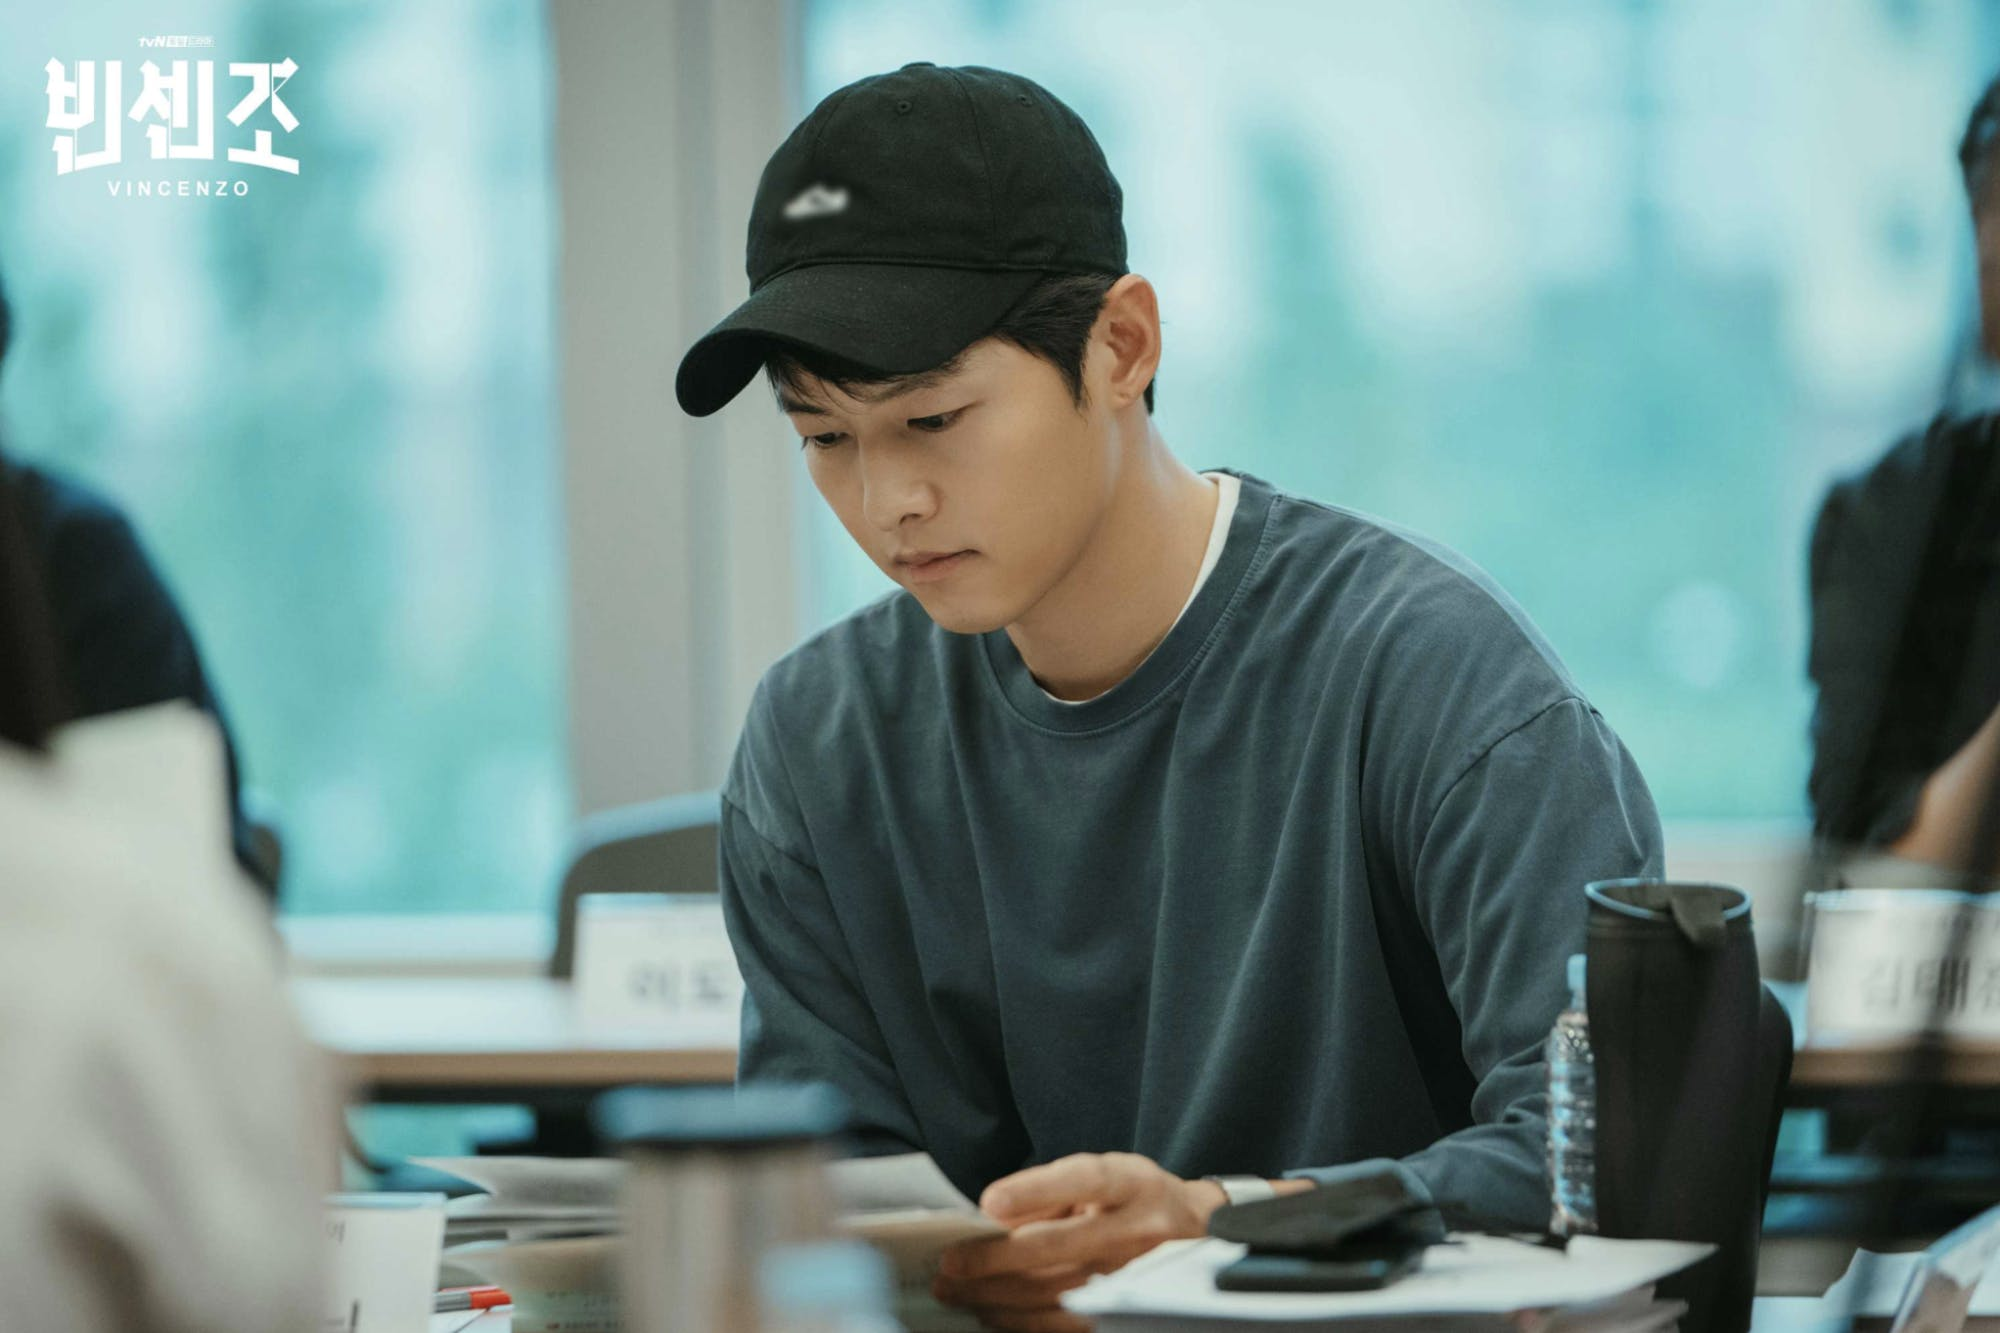 Song Joong-ki preparing to play the role of Vincenzo